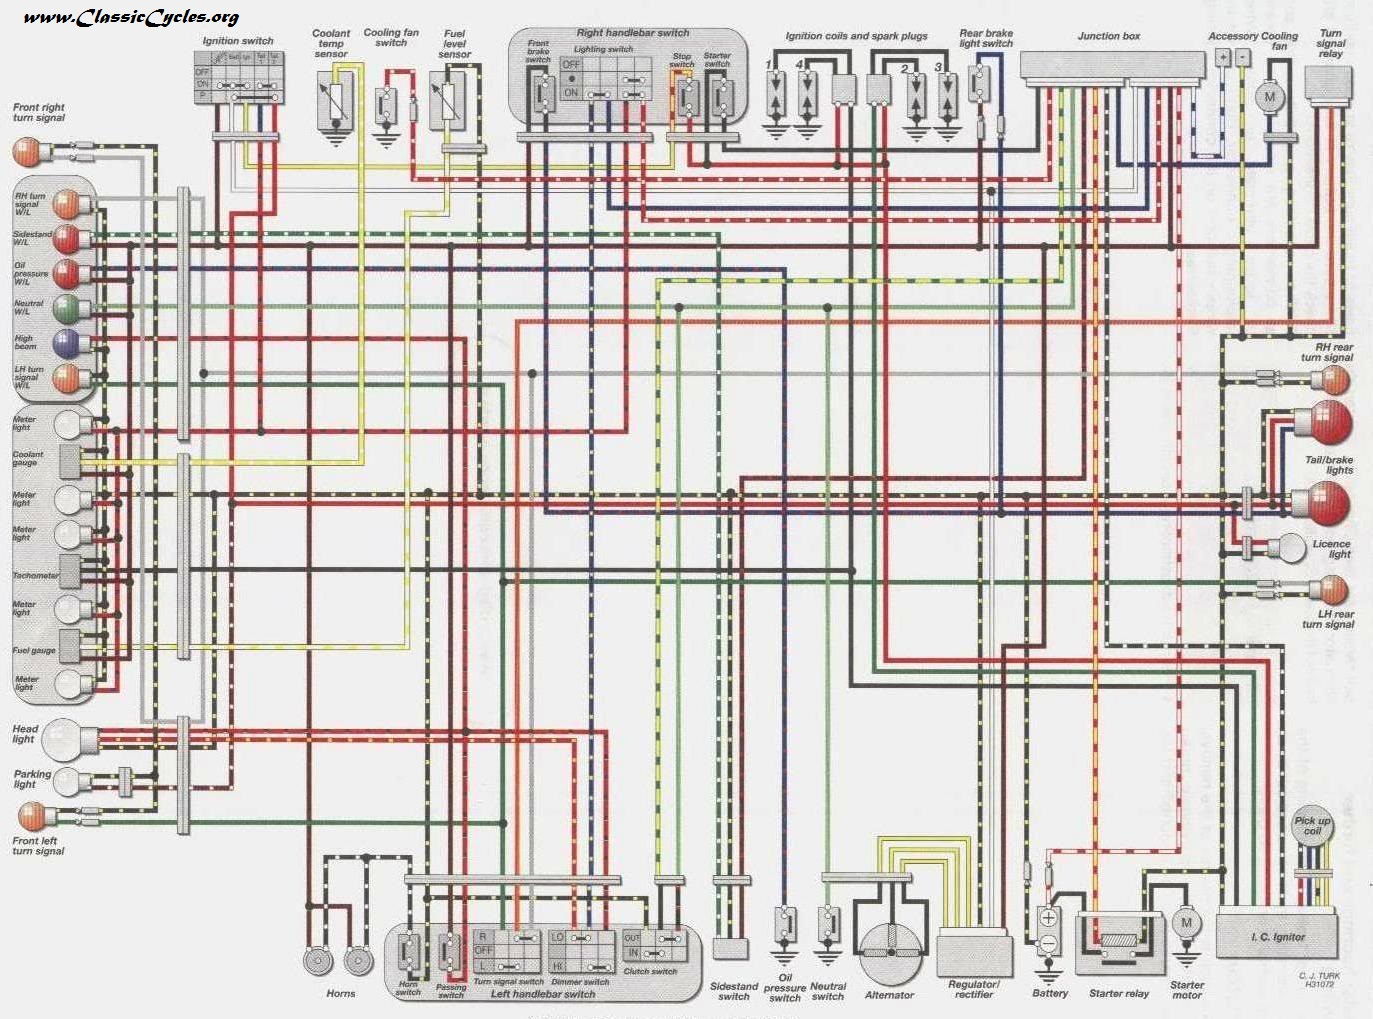 Groovy Kawasaki Motorcycle Wiring Diagrams Wiring Cloud Overrenstrafr09Org